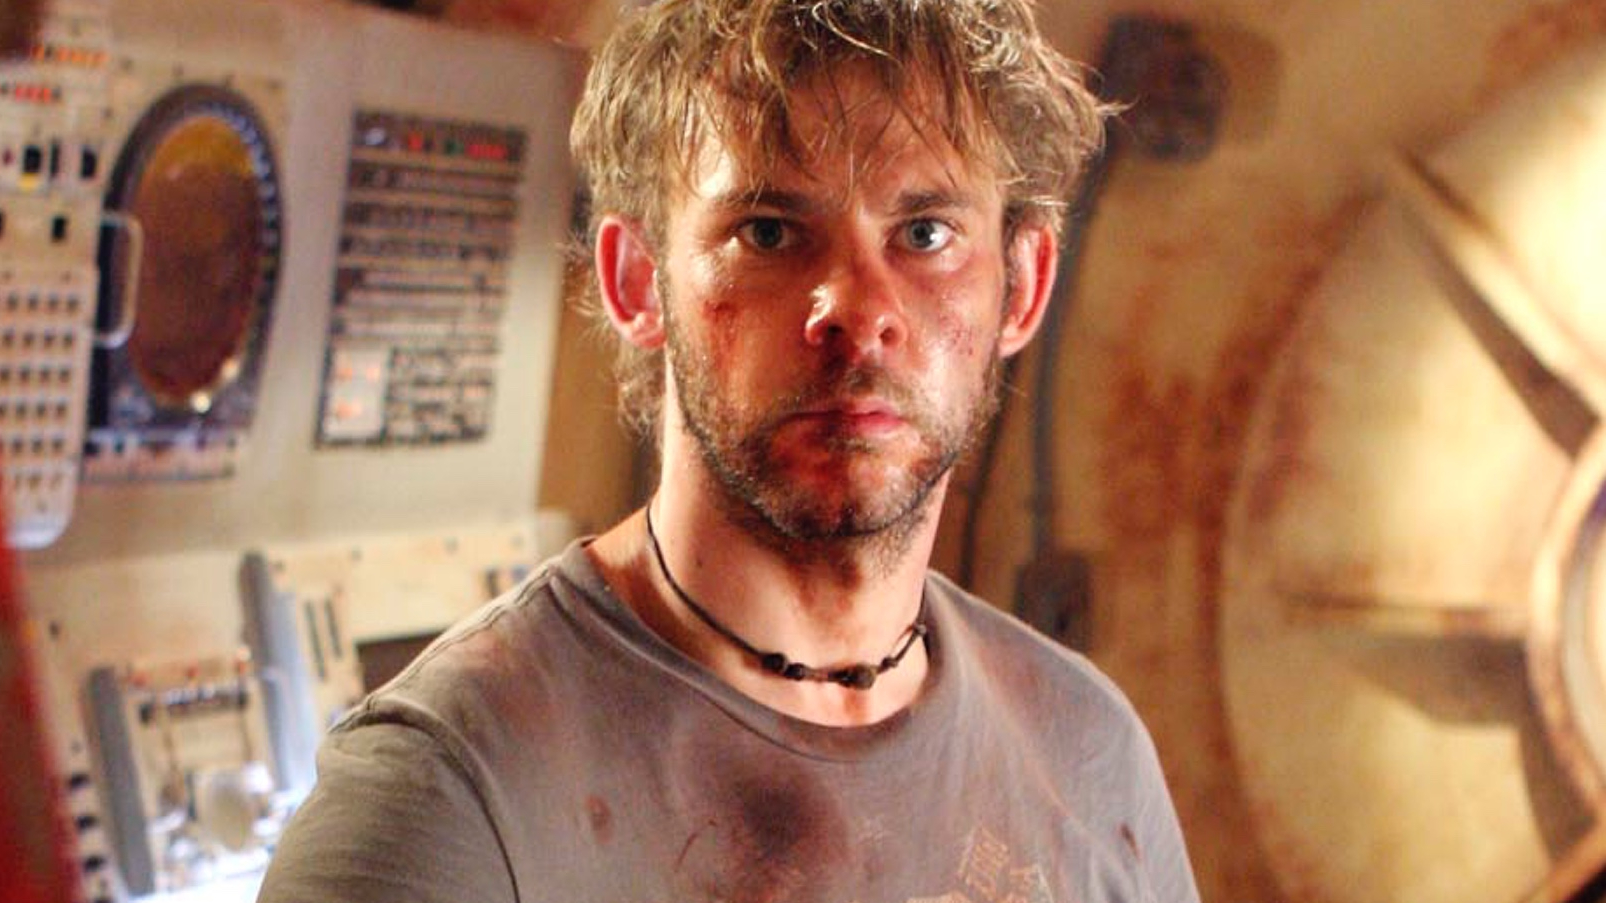 Dominic Monaghan: Mired In Accusations And Controversy Since LOTR?